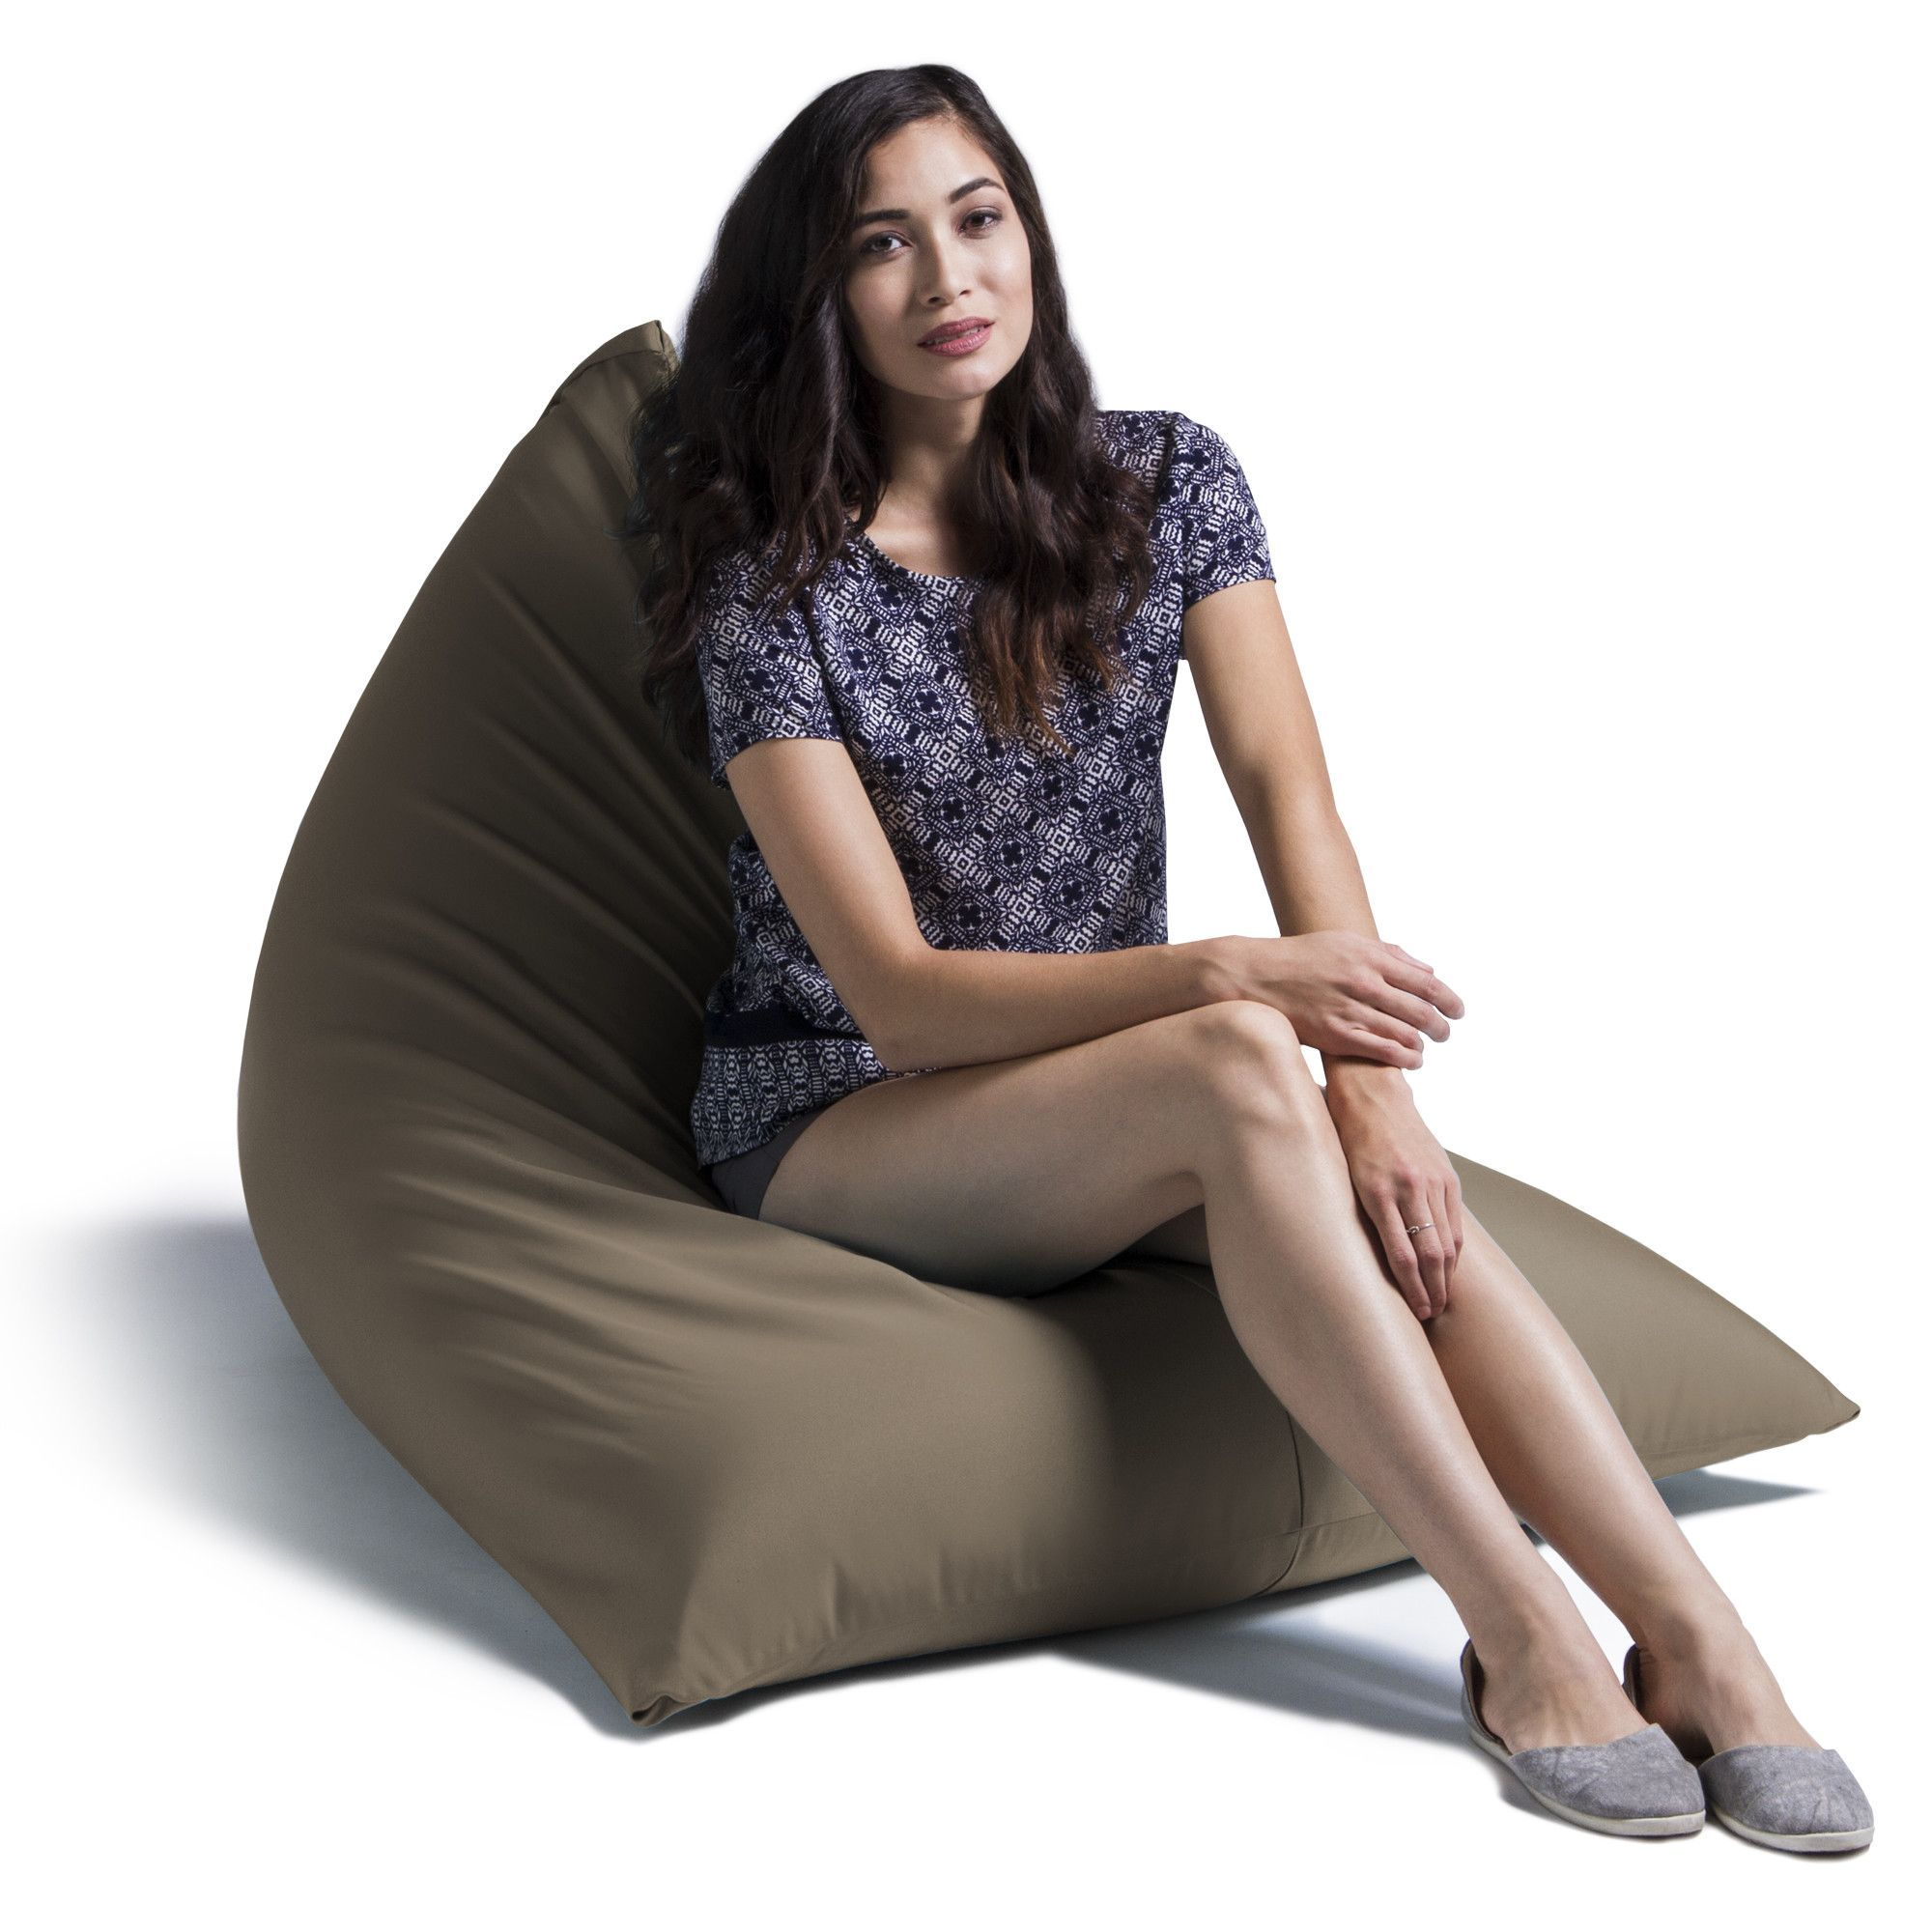 Twist Large Outdoor Friendly Bean Bag Chair & Lounger